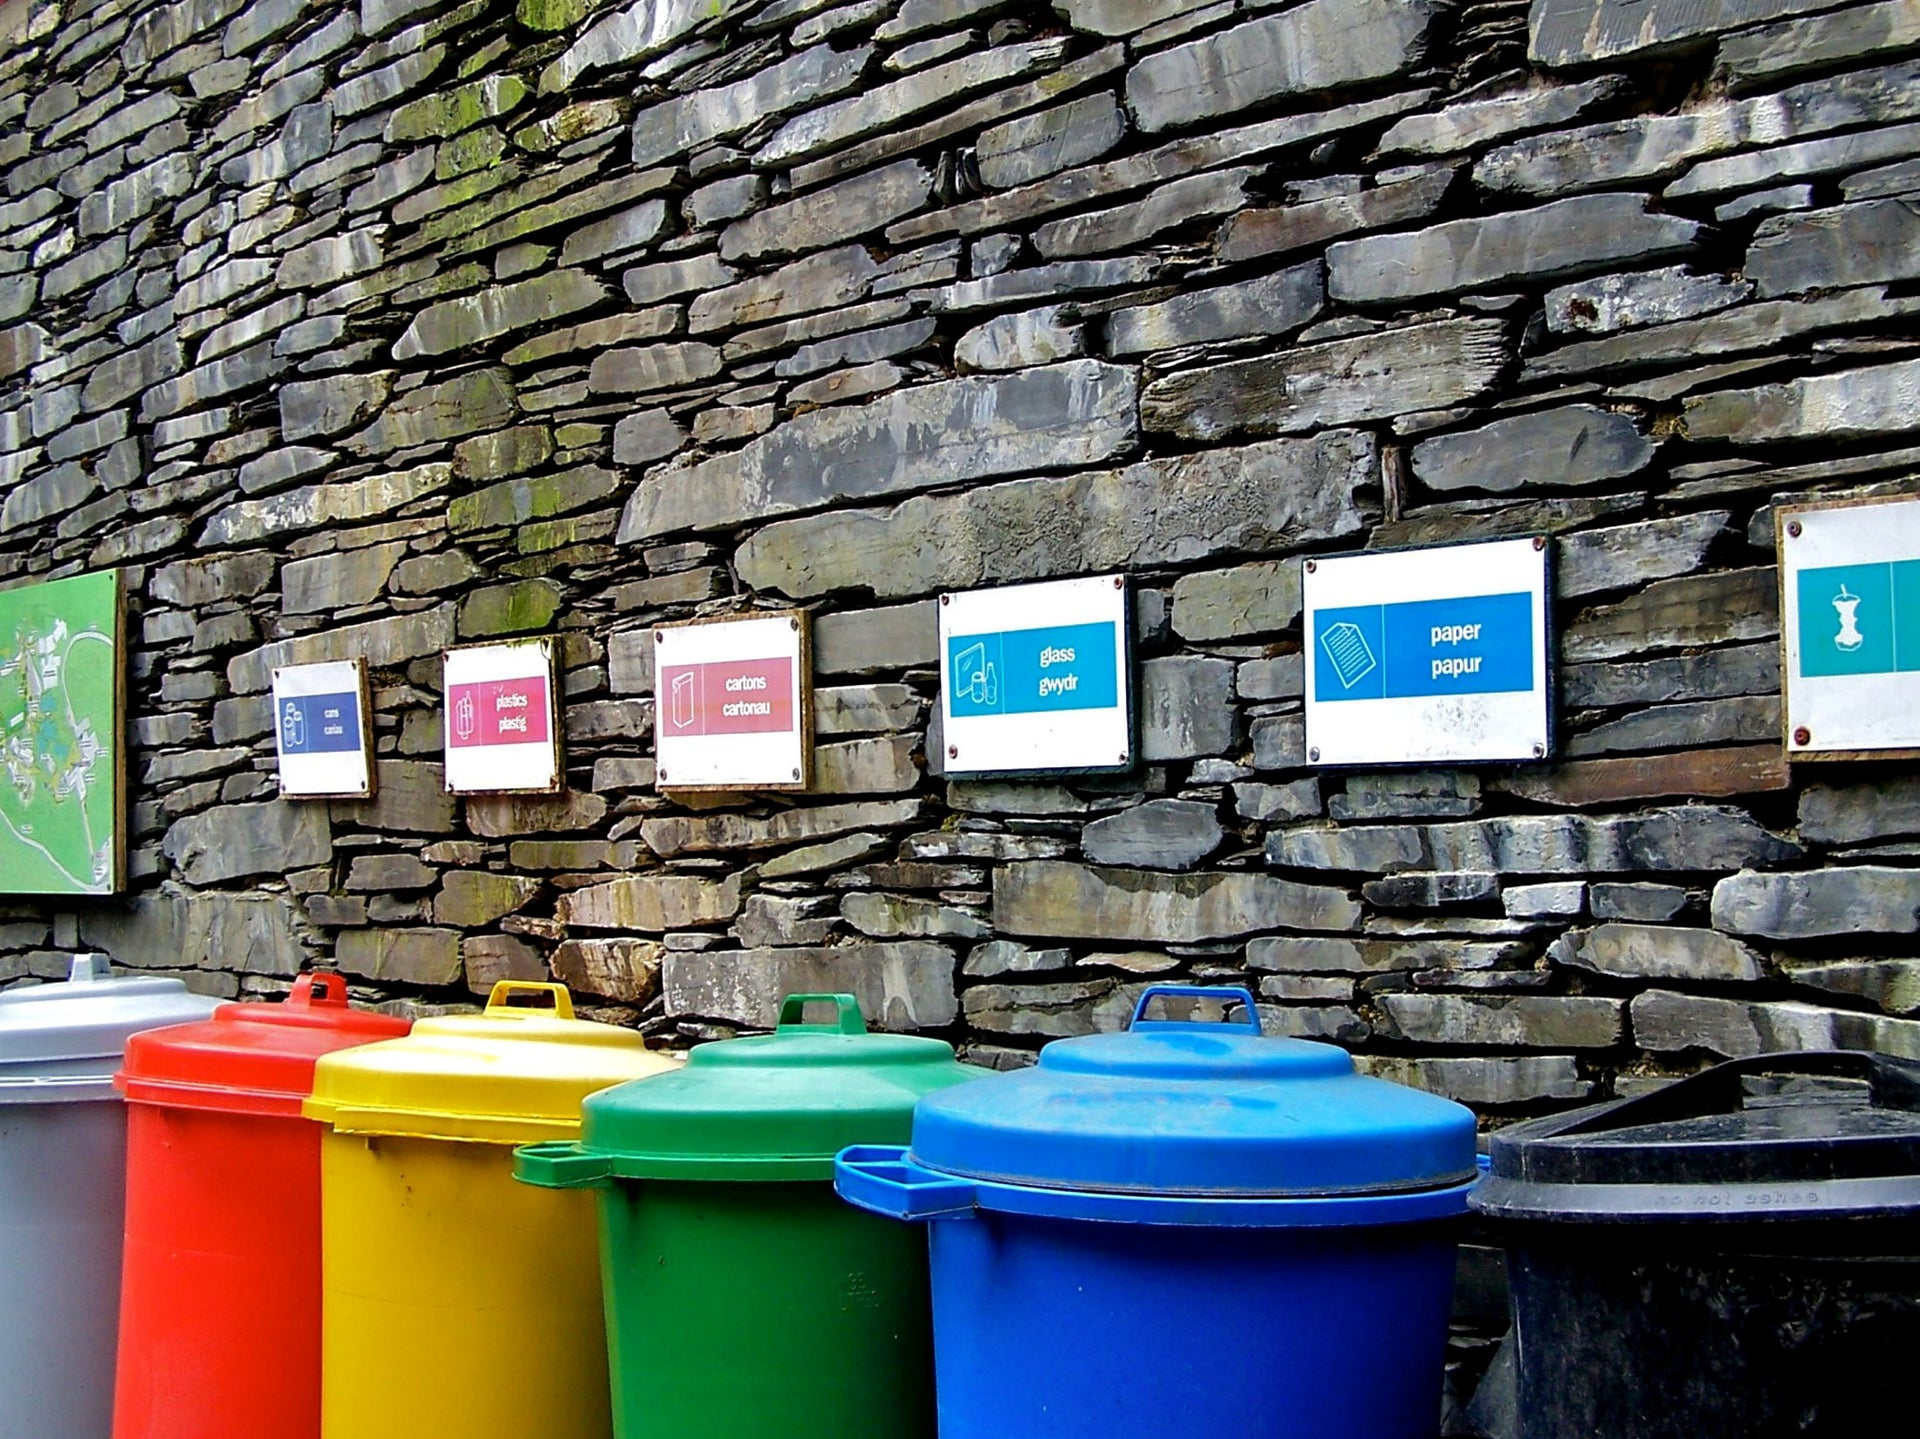 Colourful row of recycling plastic dustbins.